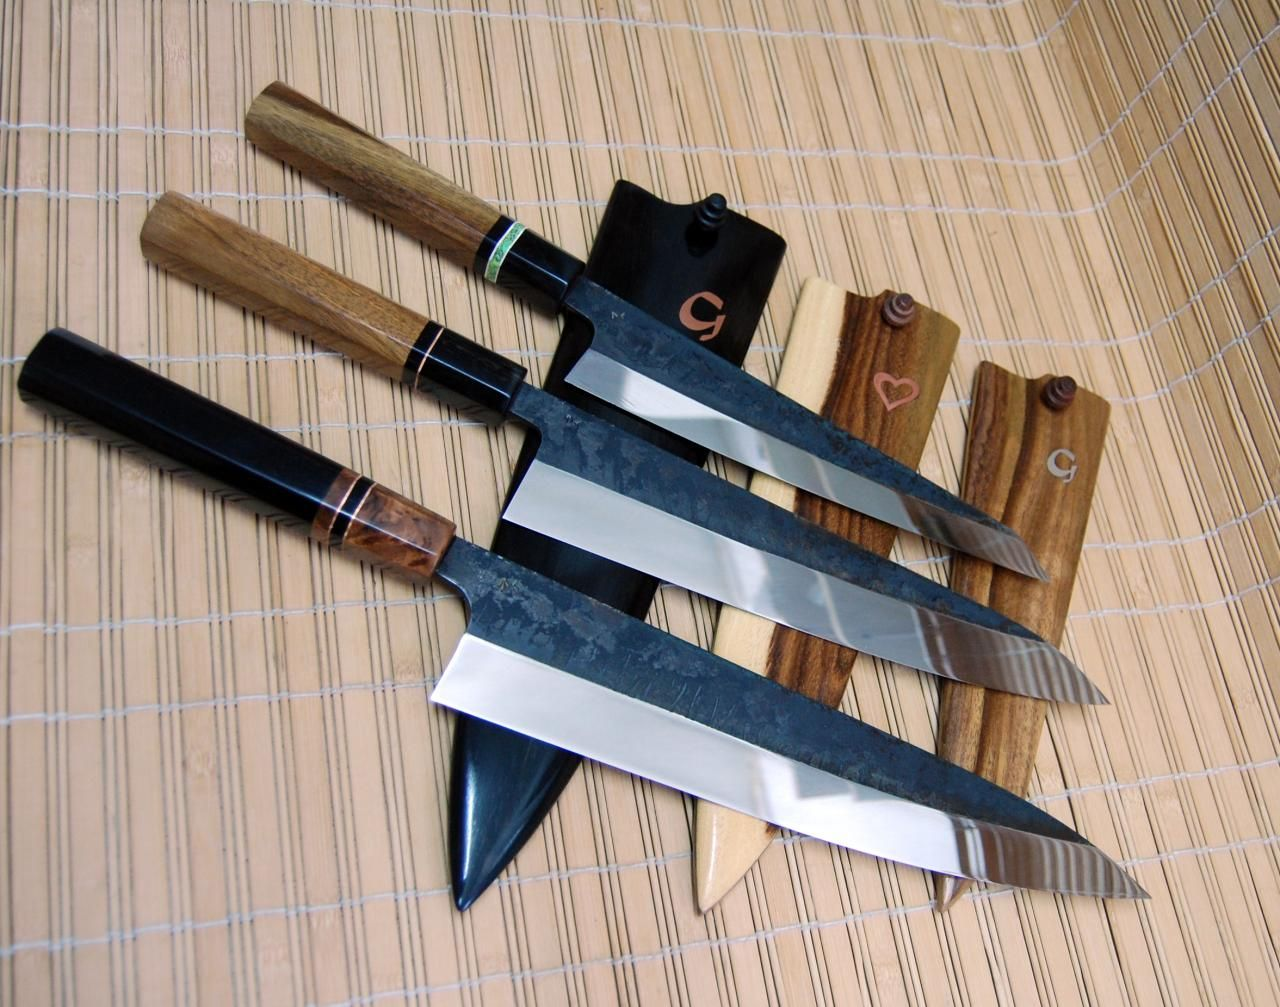 japanese style kitchen knives tc blades www tcblades net japanese style kitchen knives tc blades pinterest kitchen 4489